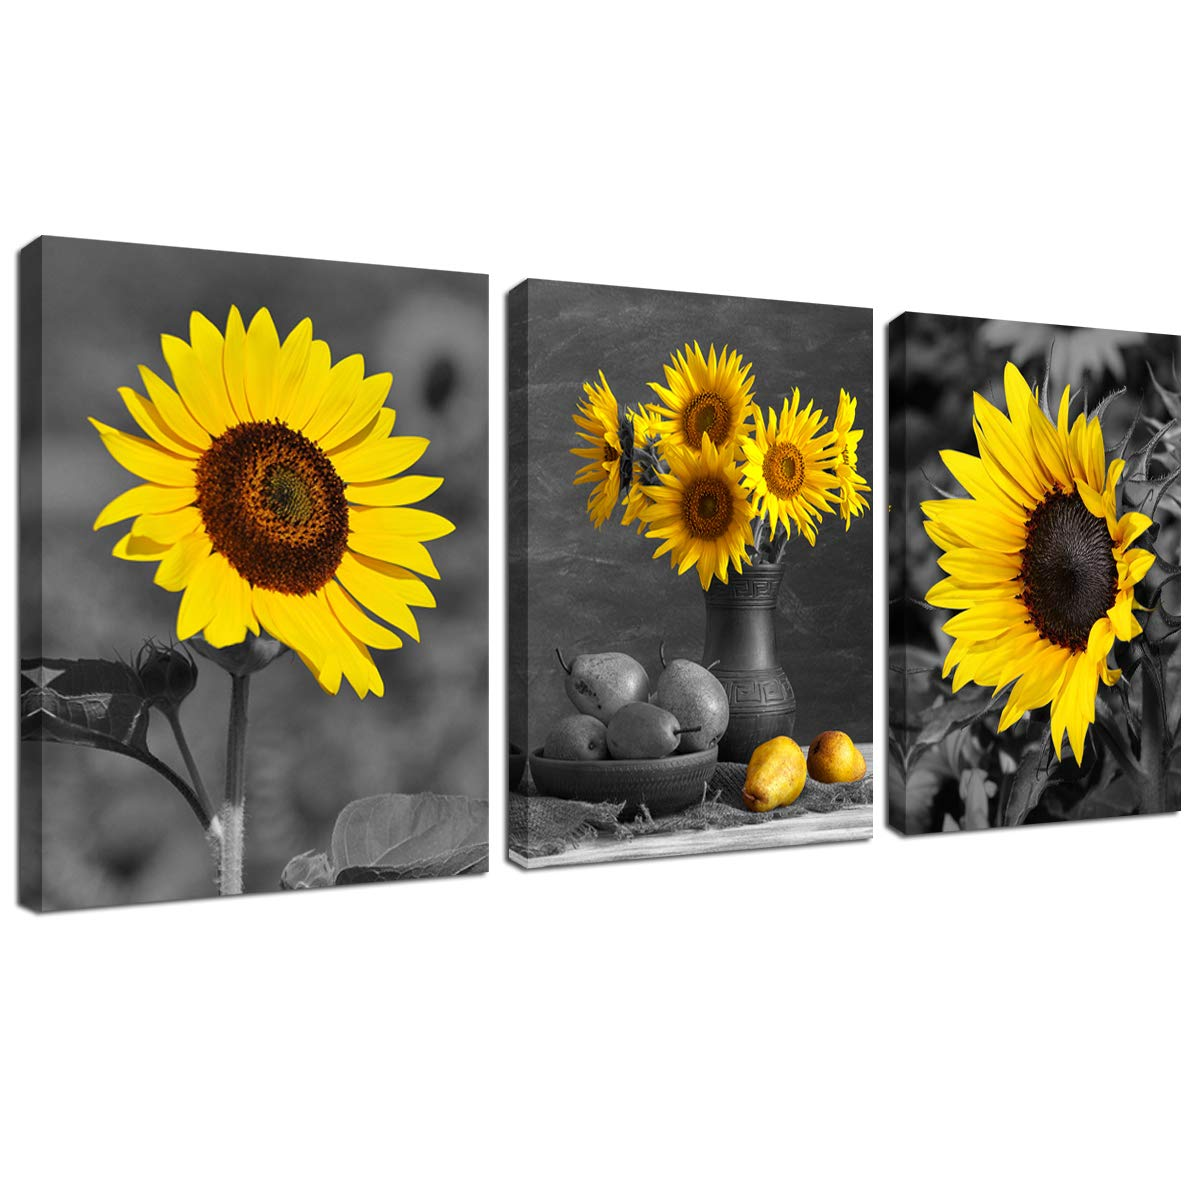 Sunflower Decor Framed Wall Art - Black and White Yellow Flowers Painting Home Office Farmhouse Picture Hanging Kitchen Bedroom Living Room Decoration Canva Print 12''x16'' 3 Piece Modern Artwork